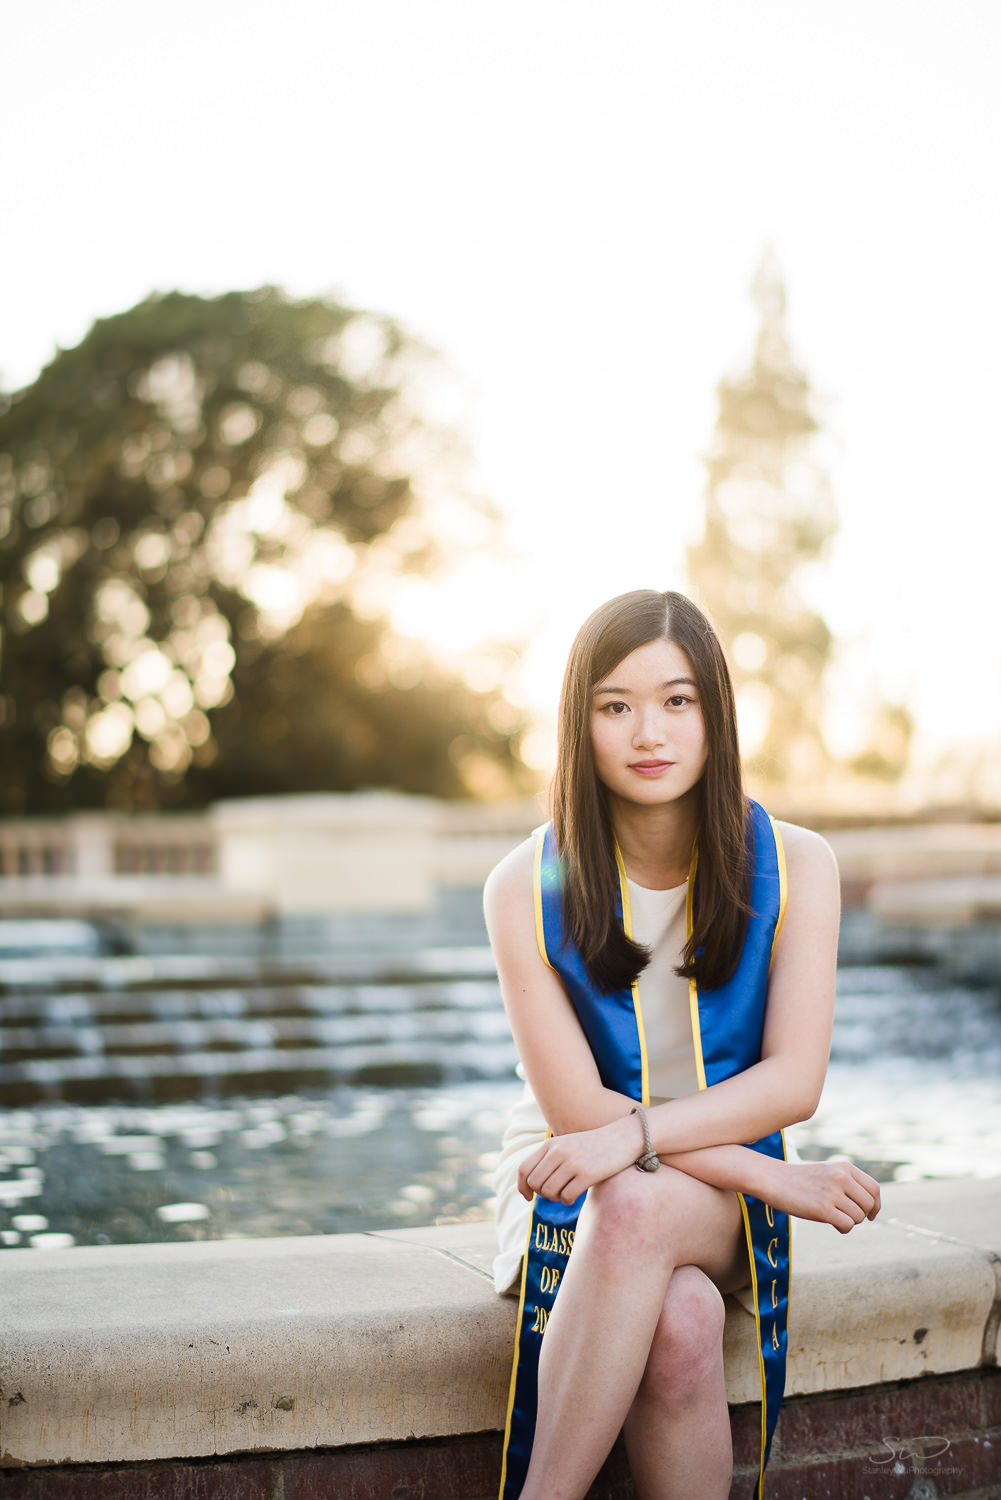 Fashion graduation portrait. Best graduation portrait photography, Los Angeles.